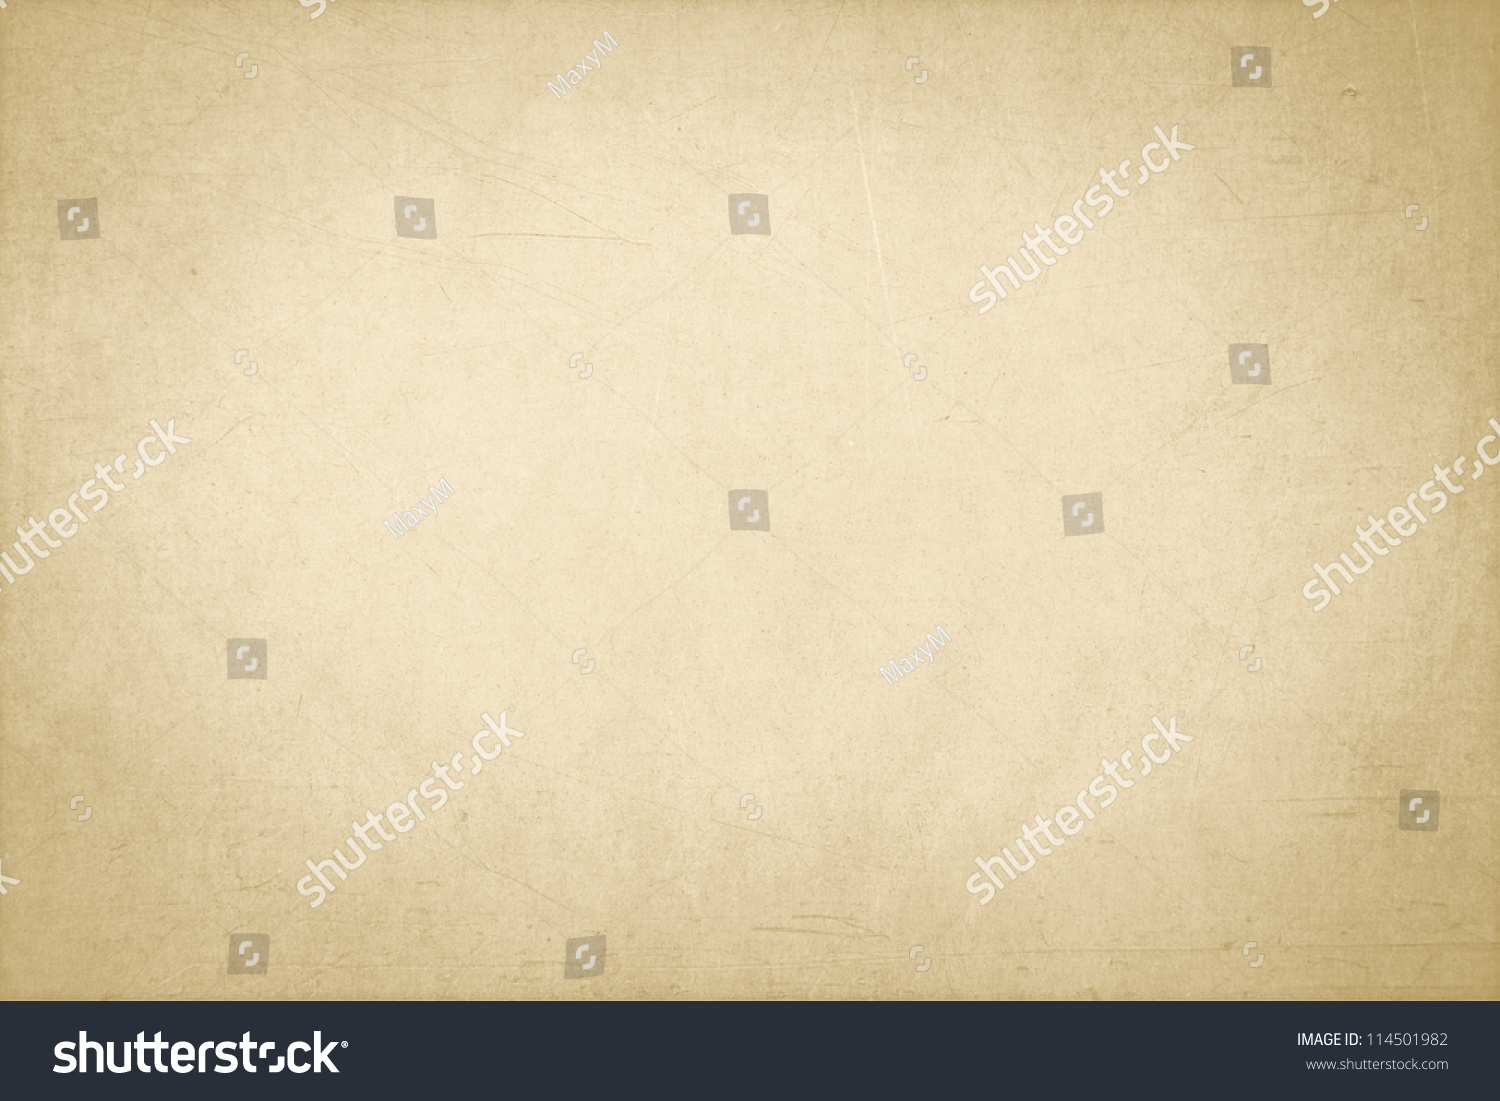 old poster template stock illustration 114501982 shutterstock